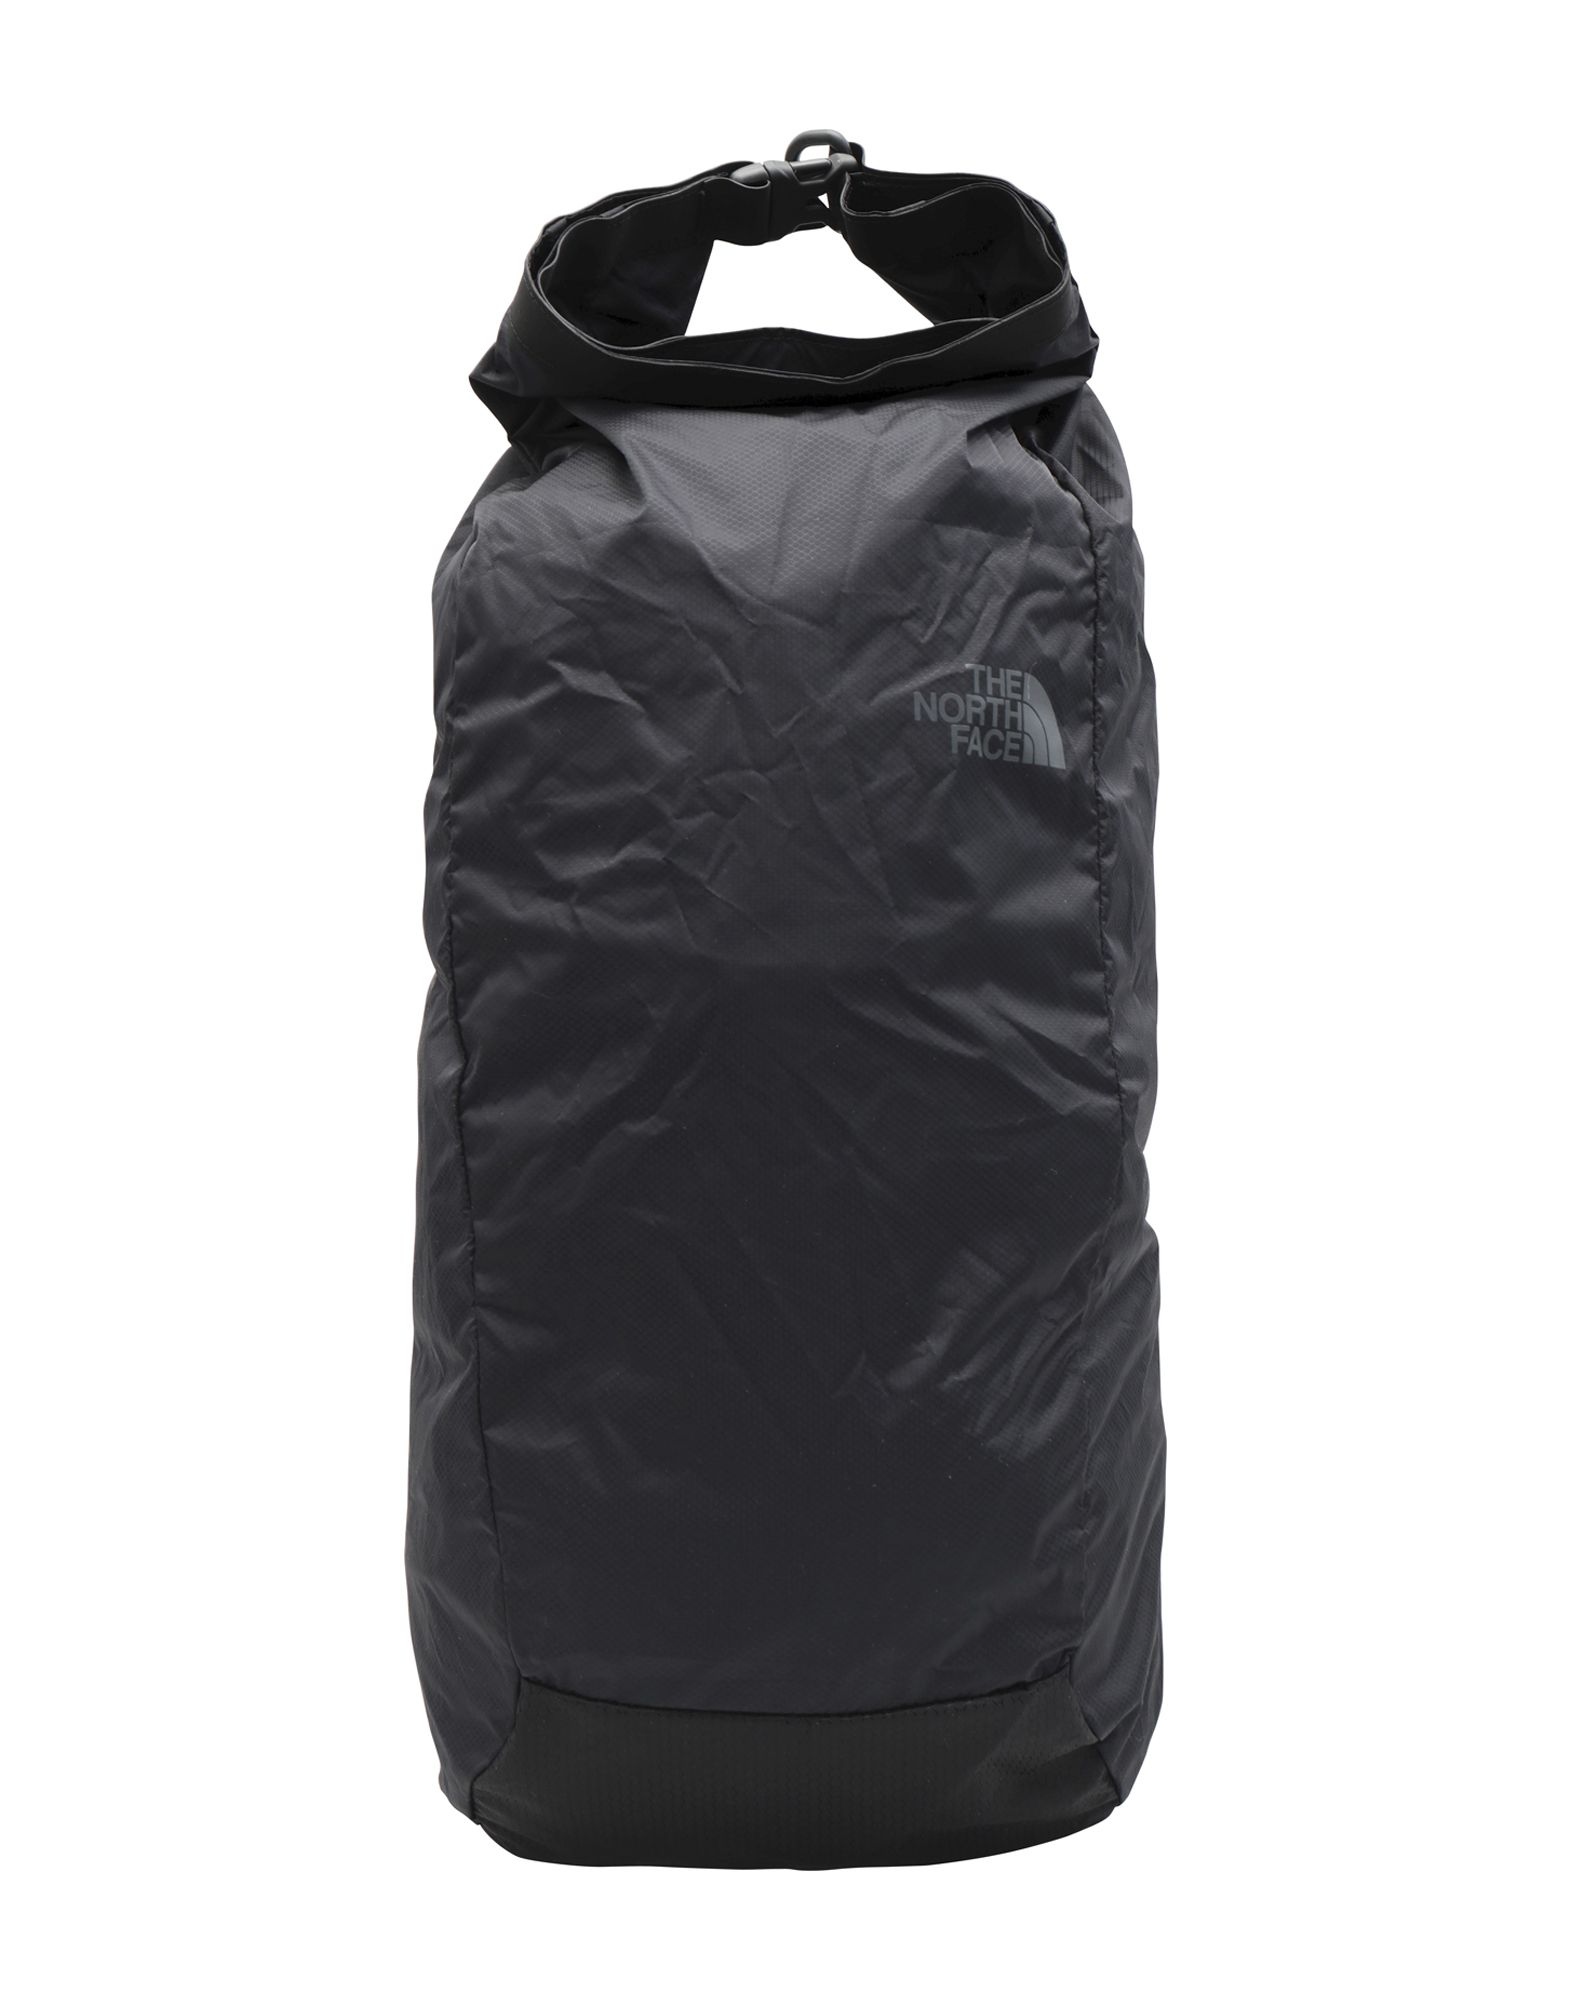 THE NORTH FACE Рюкзаки и сумки на пояс сумка на пояс the north face the north face chalk bag pro красный os